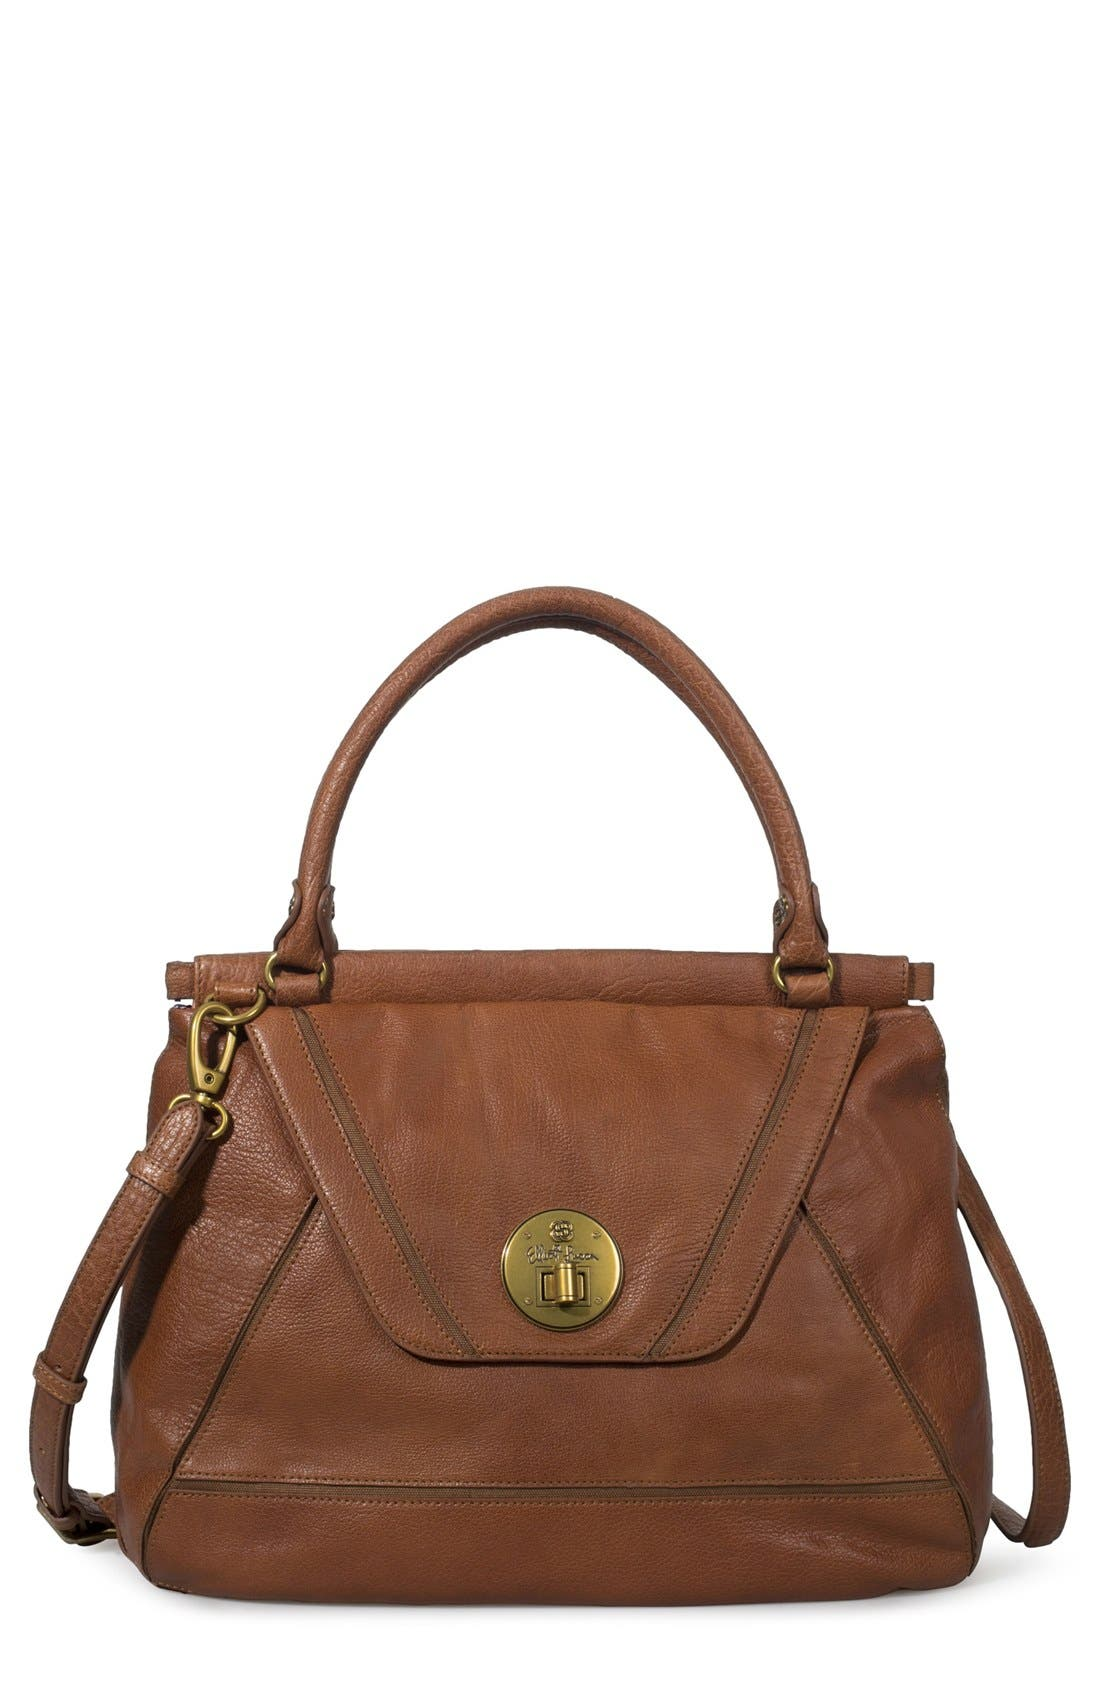 Alternate Image 1 Selected - Elliott Lucca 'Cordoba' Leather Satchel, Medium